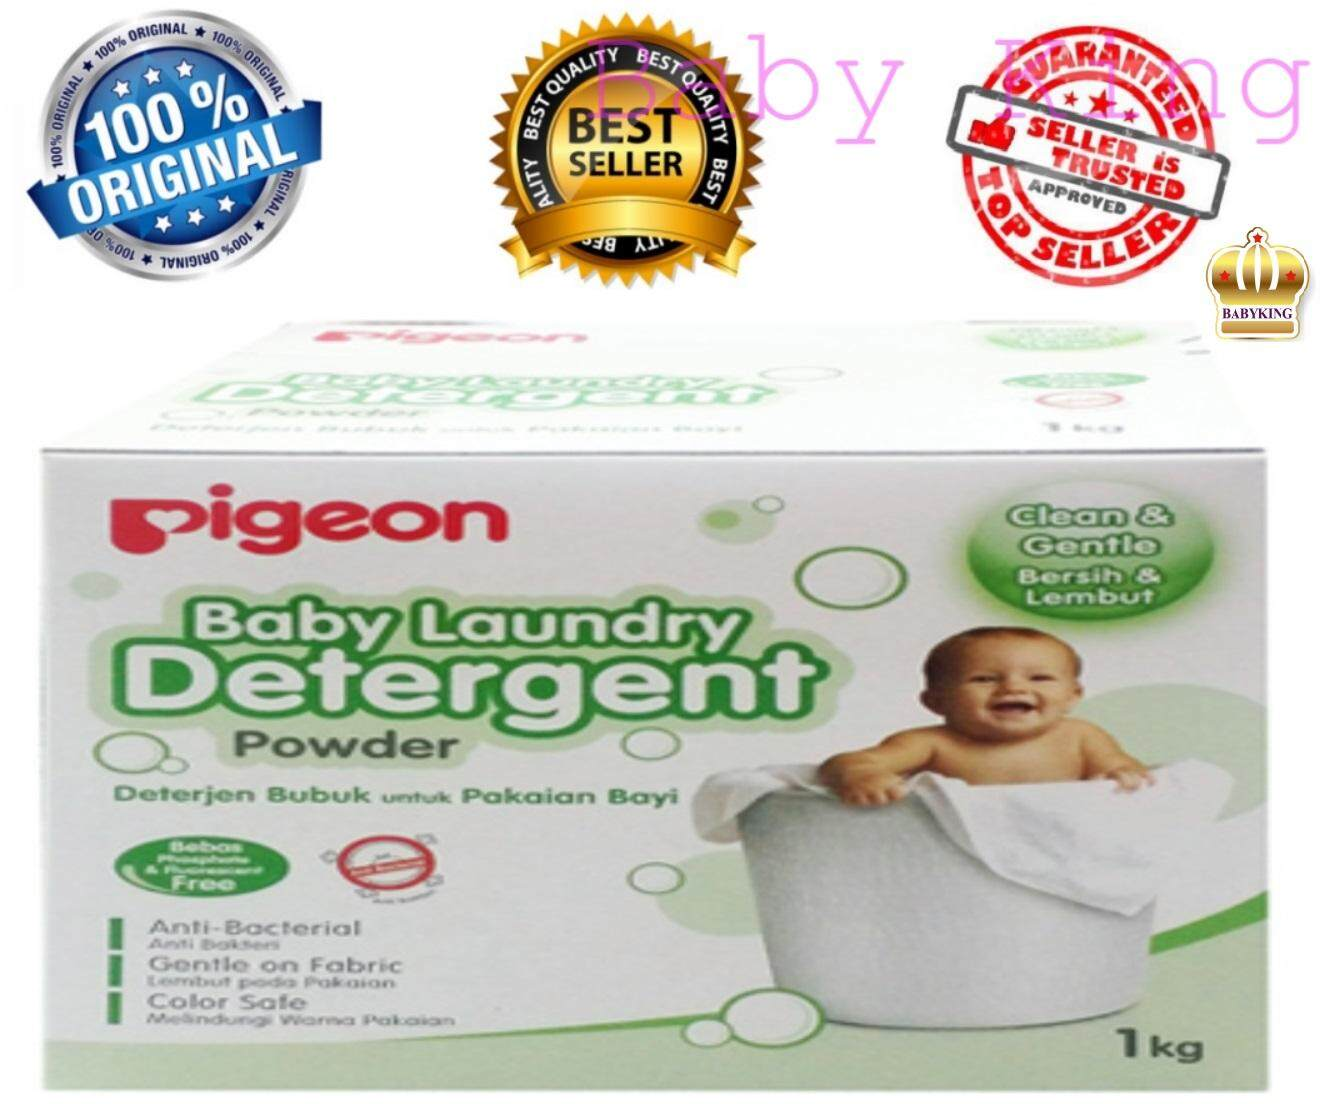 Original Pigeon Baby Laundry Detergent Powder 1kg By Baby King.